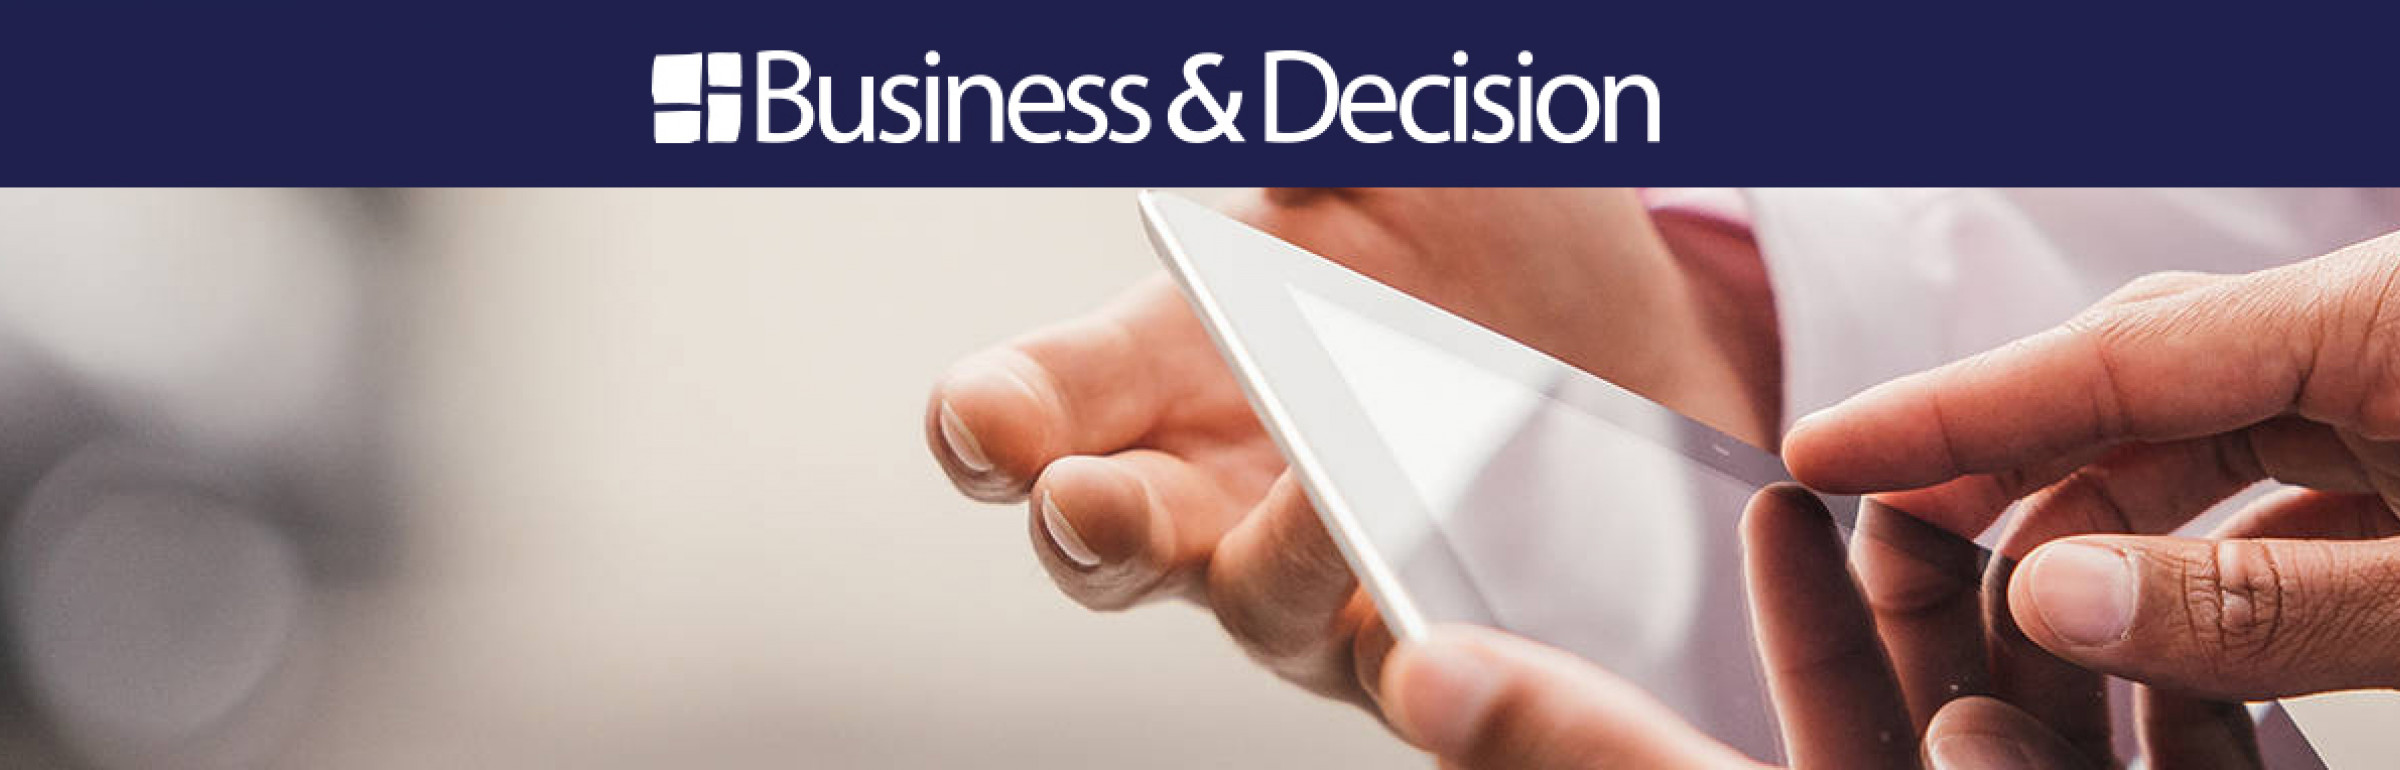 Banner Business & Decision